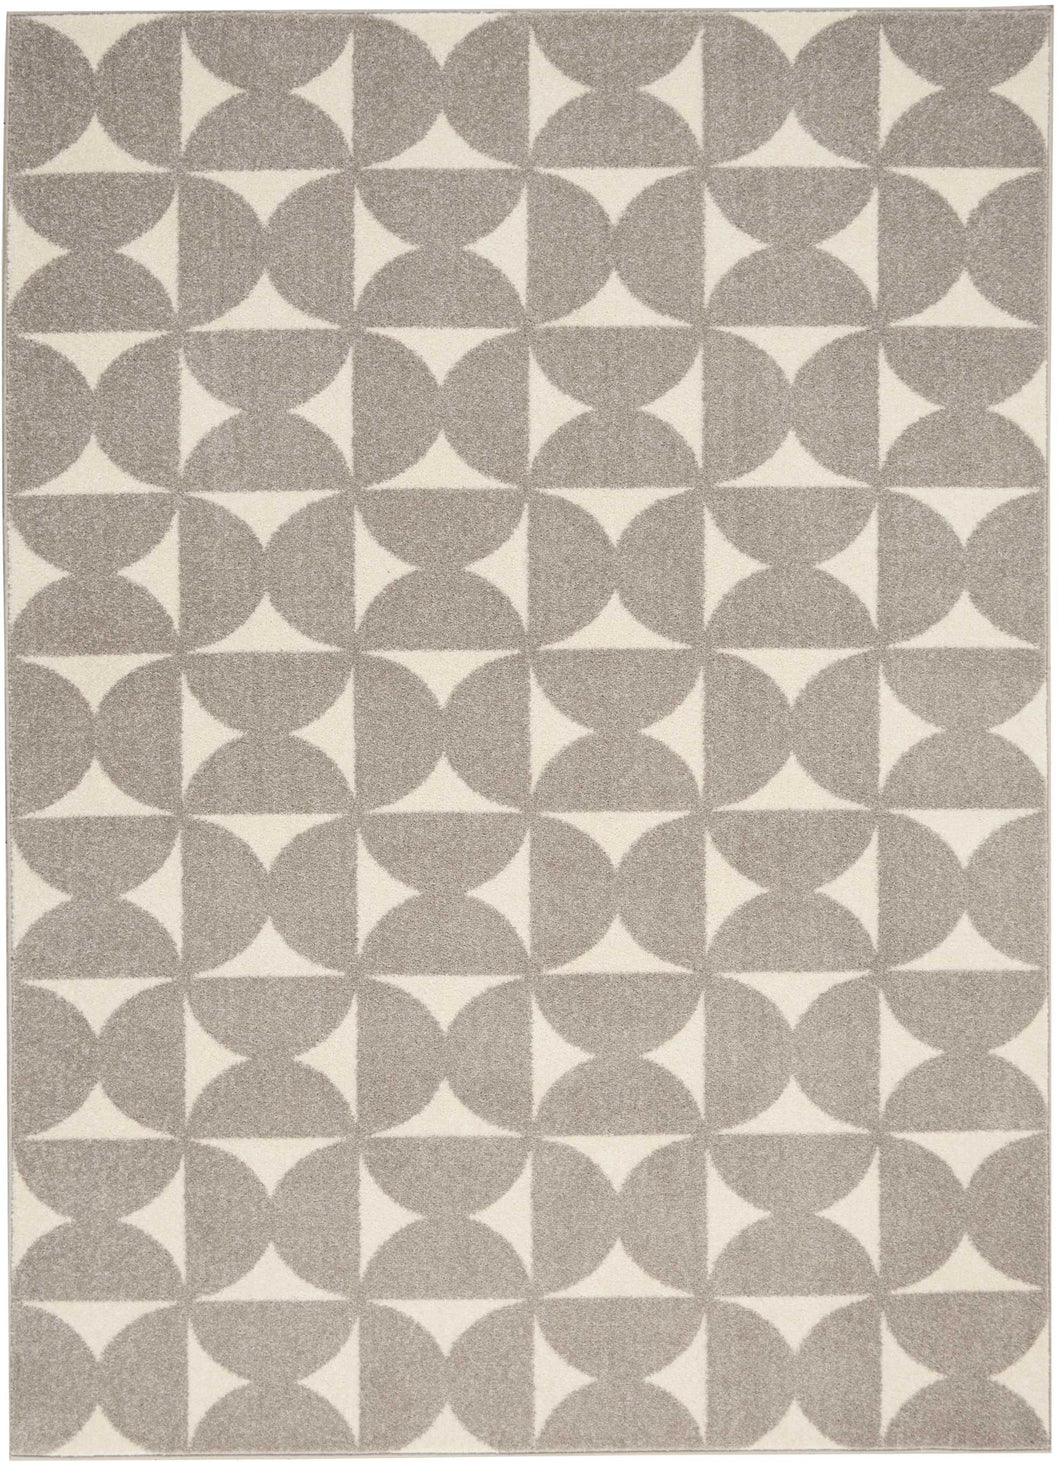 Nourison Harper DS301 Grey 4'x6' Area Rug DS301 Grey